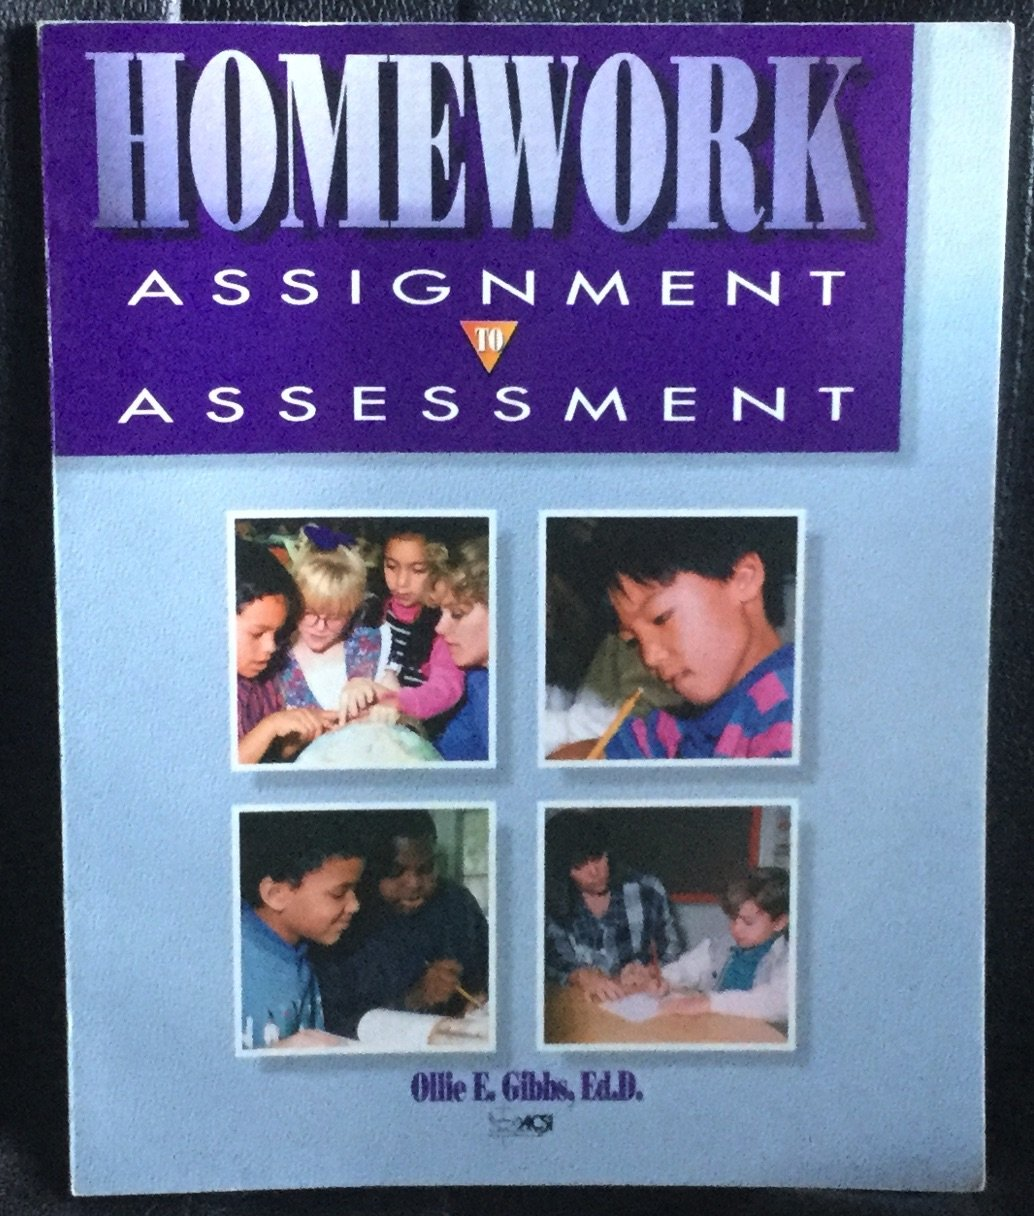 Homework: Assignment to assessment Paperback � 1994